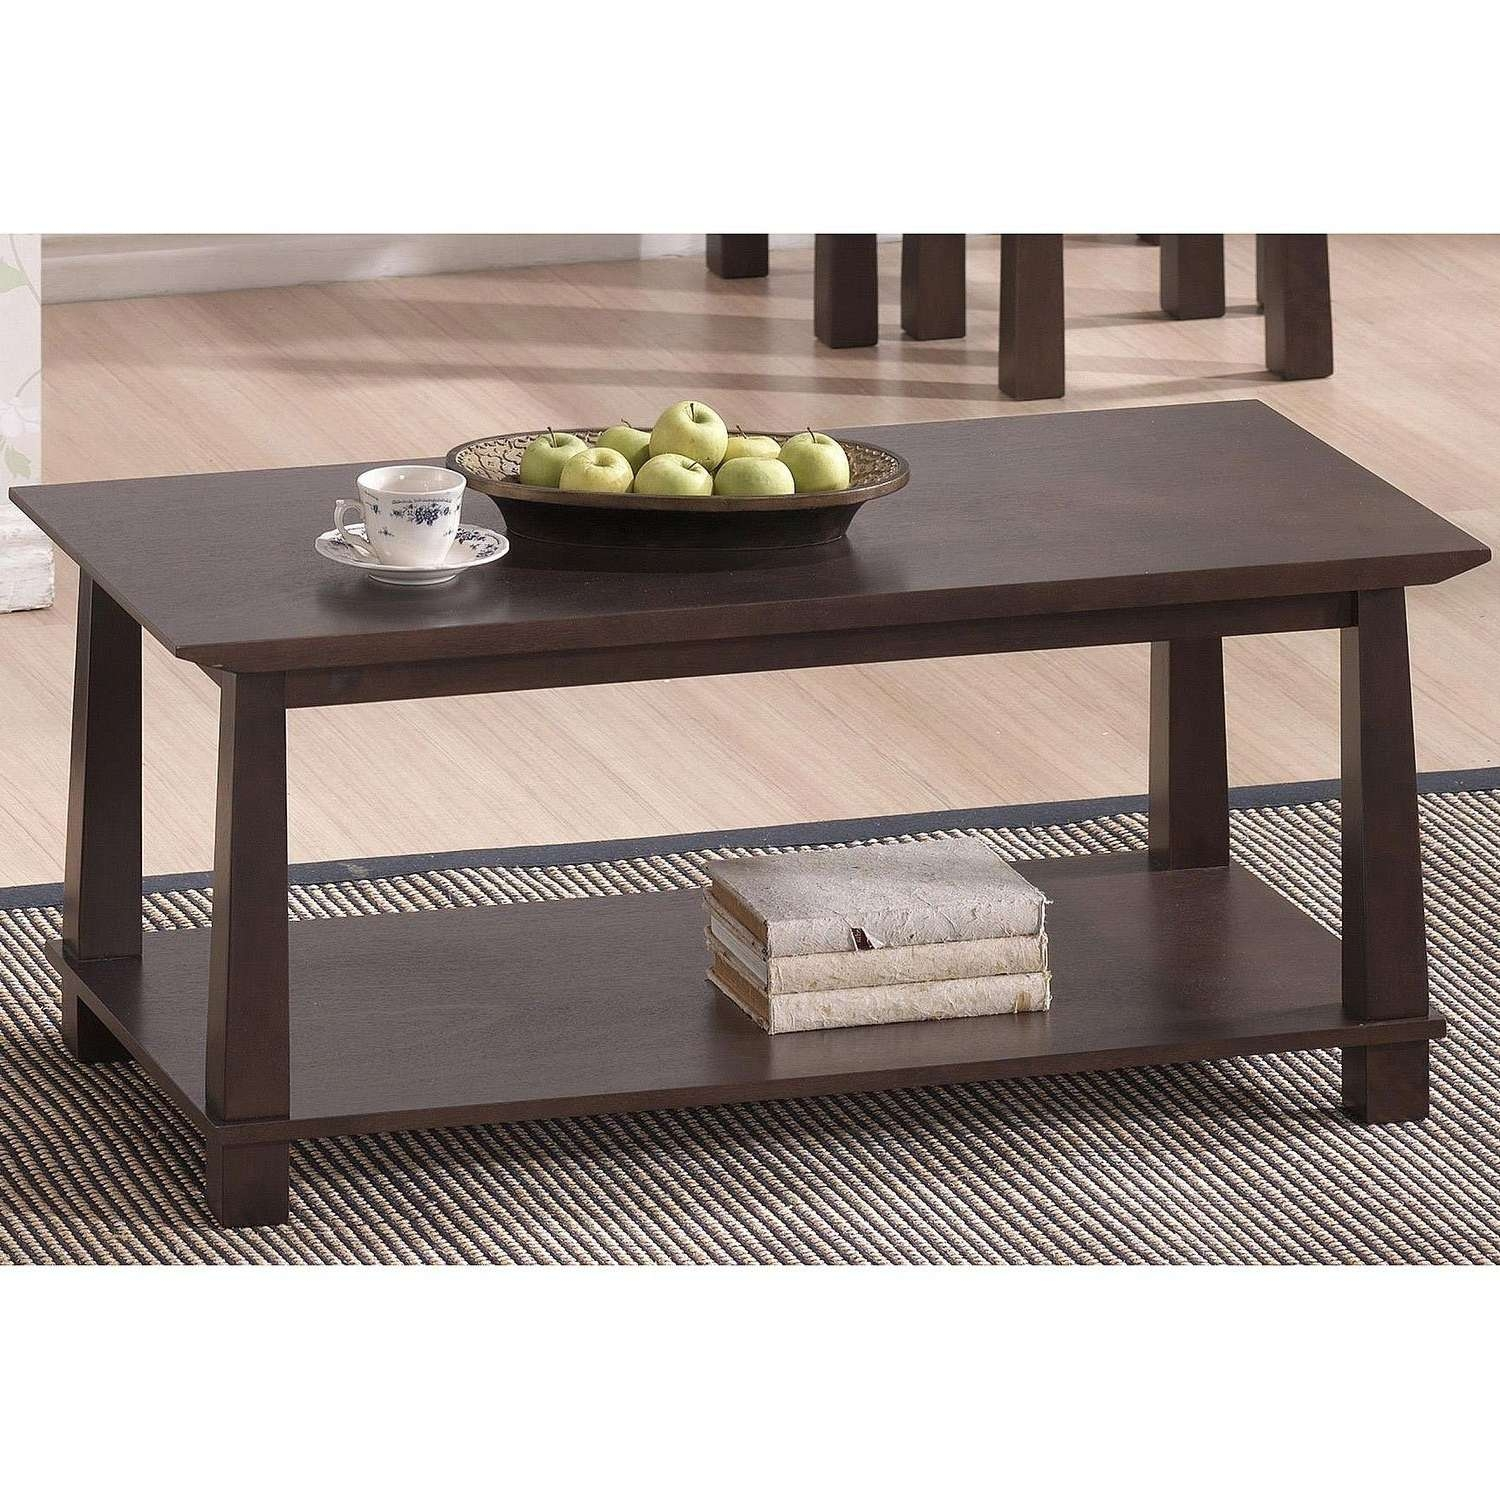 Coffee Table : Magnificent Monarch Dining Table Monarch Intended For Current Dark Brown Coffee Tables (View 15 of 20)